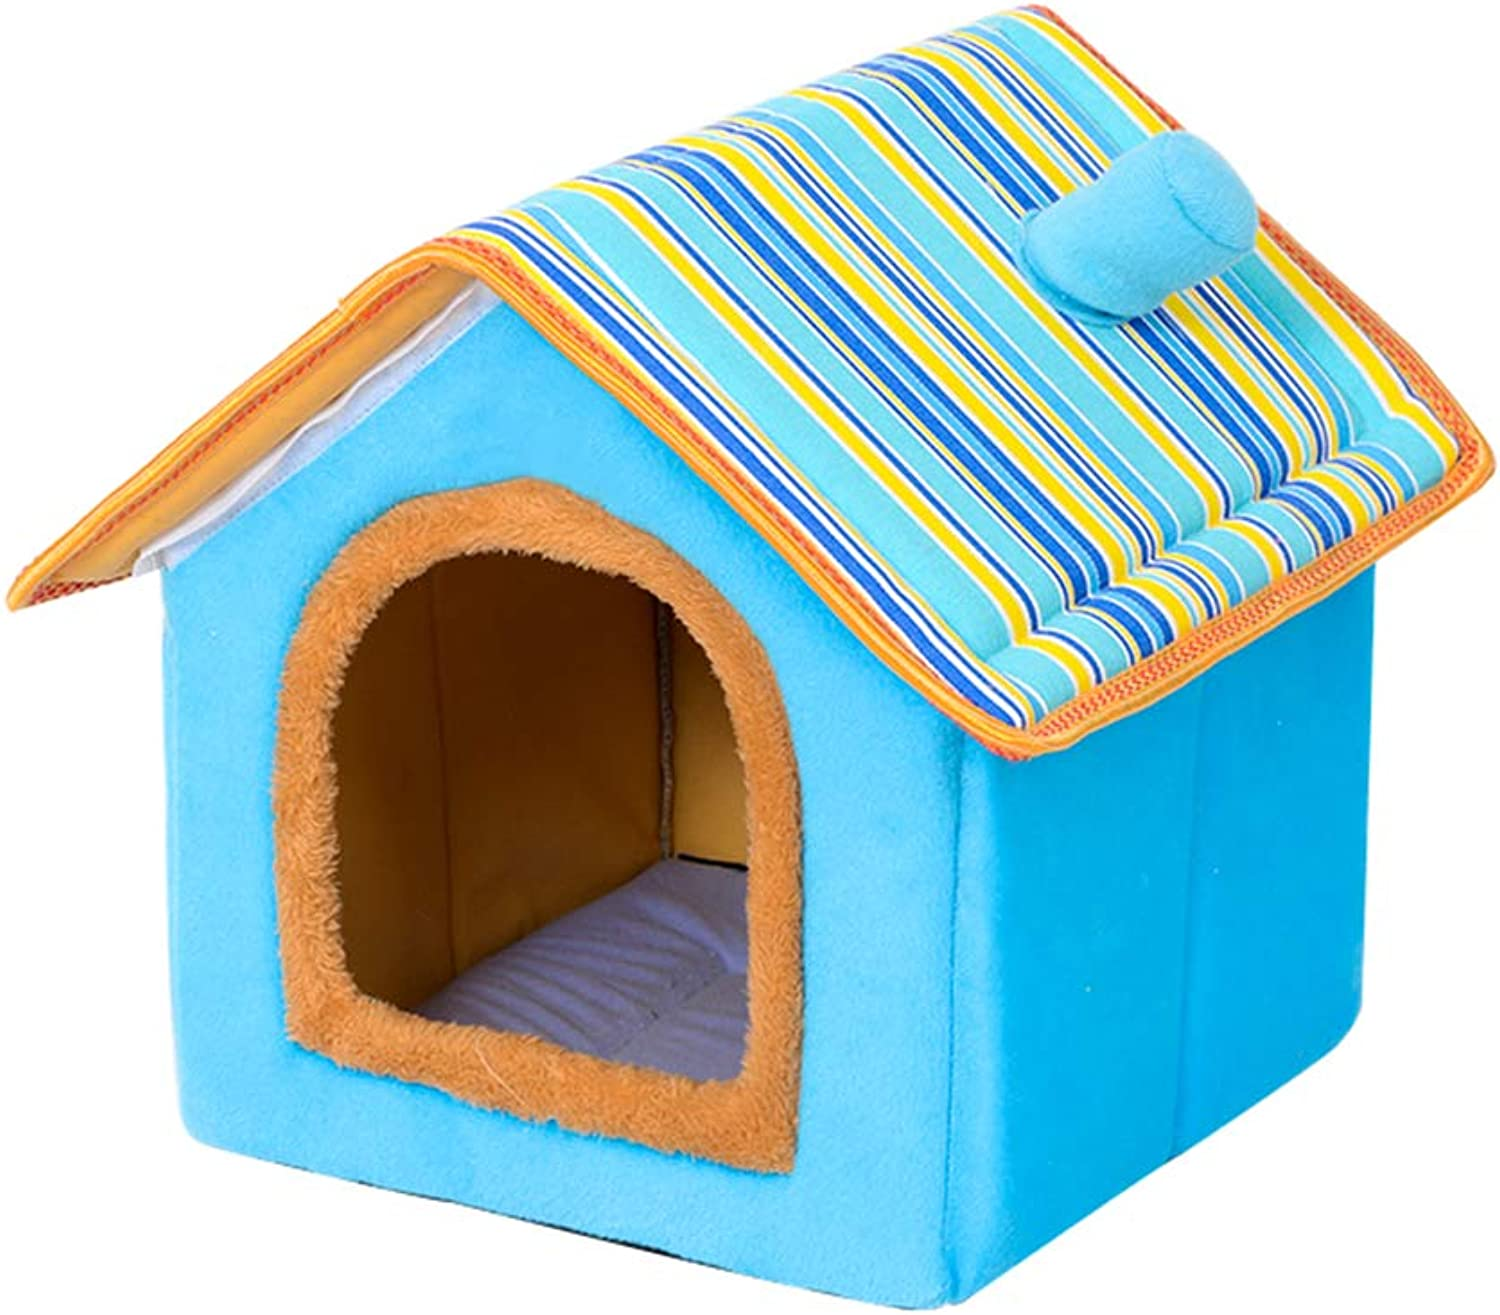 Pet nest Puppy Kennel Four Seasons Washable Small Dog Dog House pet Supplies cat Litter,bluee,S